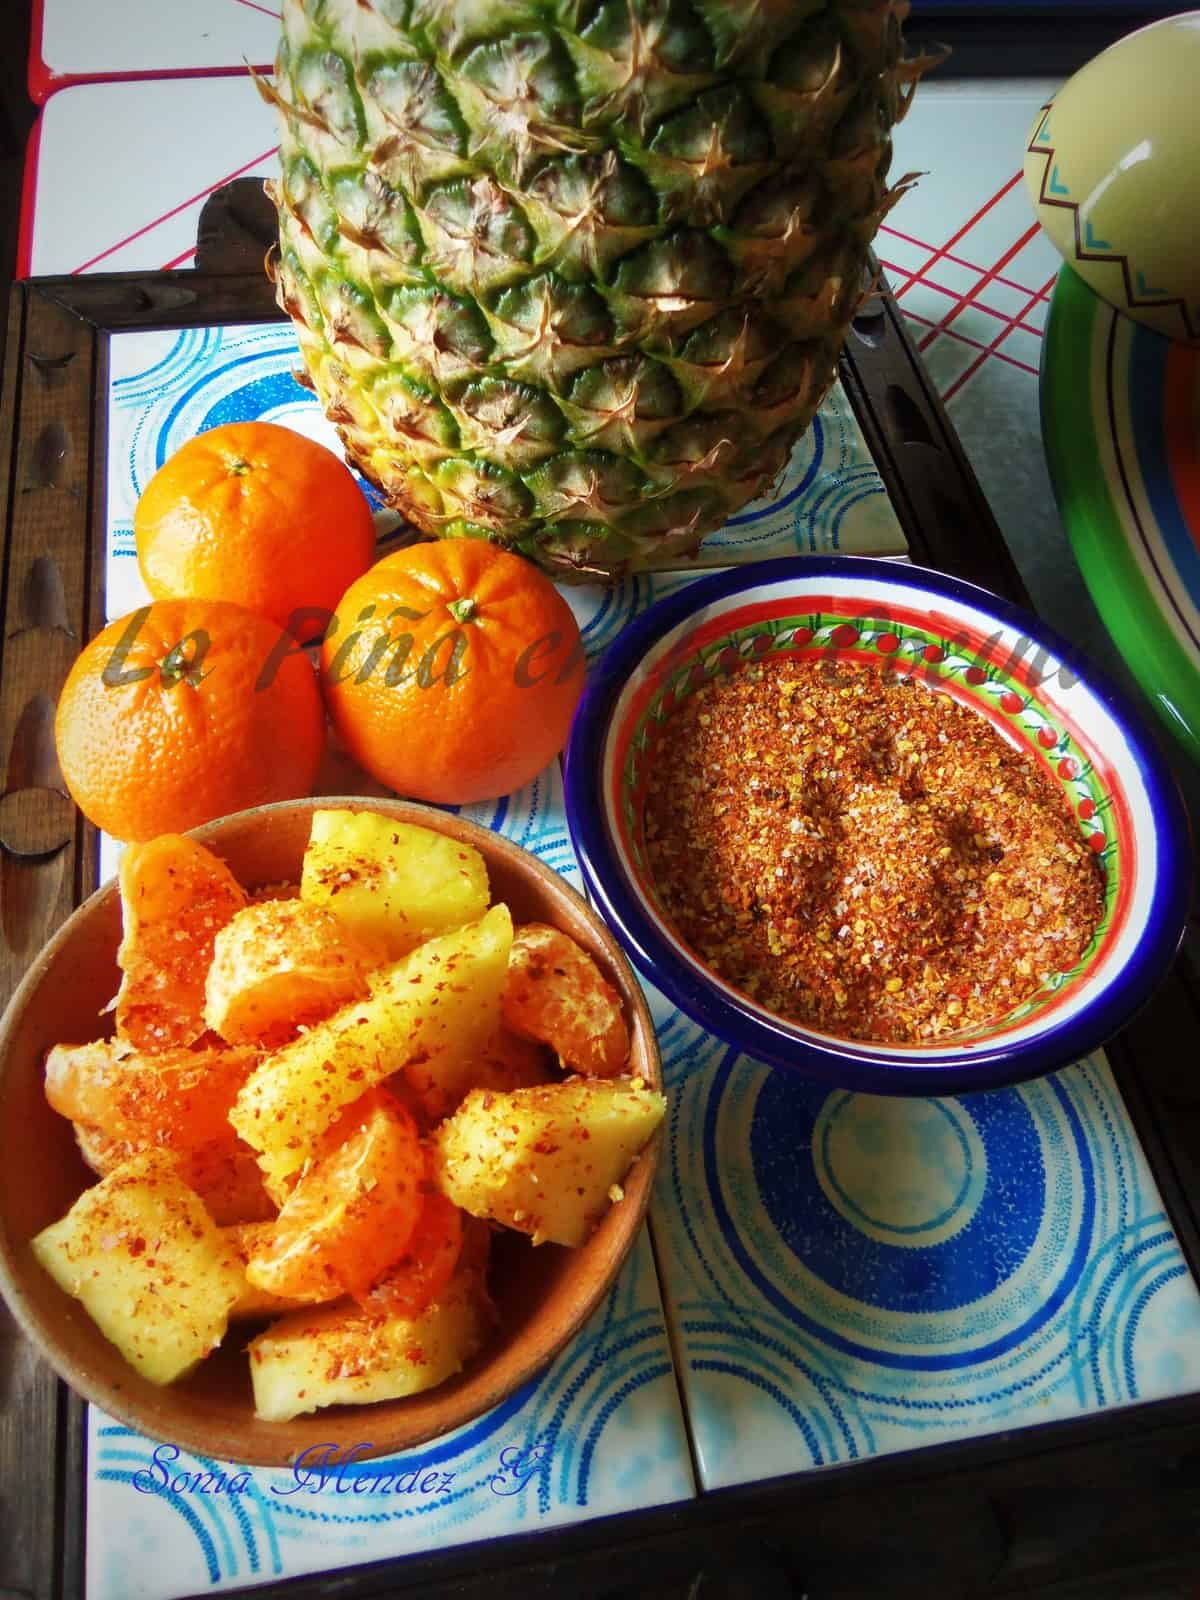 One of my favorite antojitos is homemade chile limon seasoning on fresh fruit.